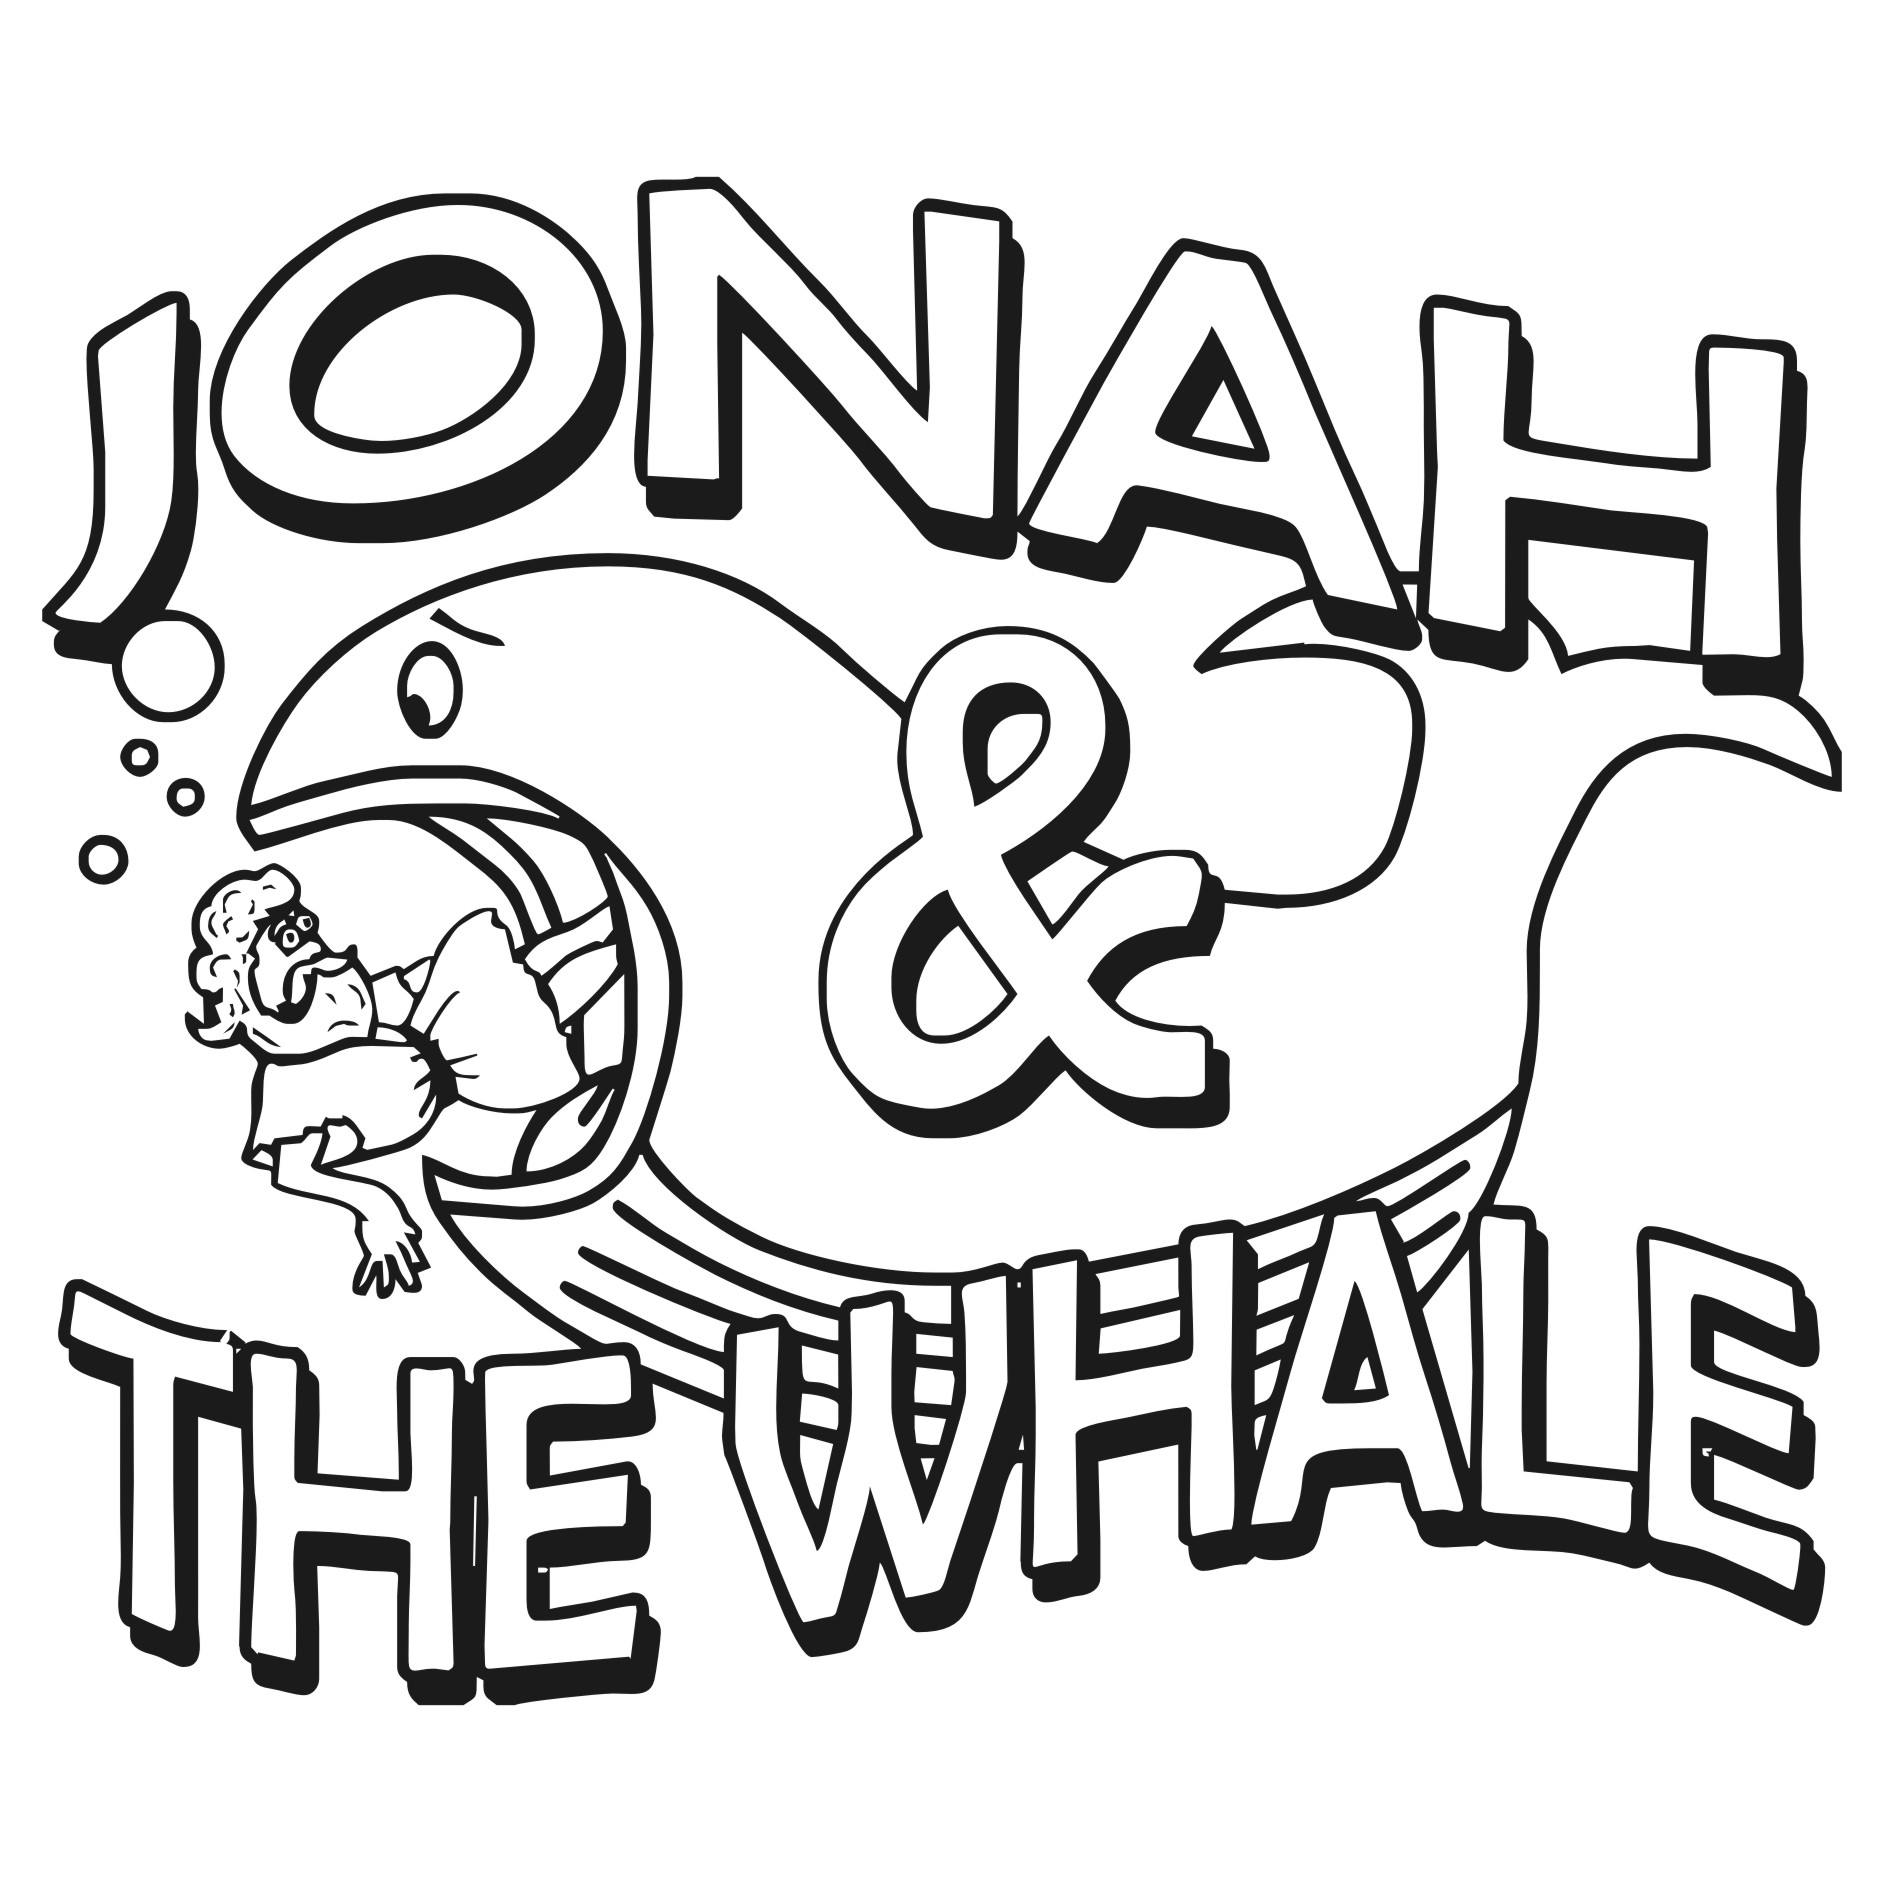 1883x1883 Colorful Jonah Inside The Whale Coloring Page Beautiful Free